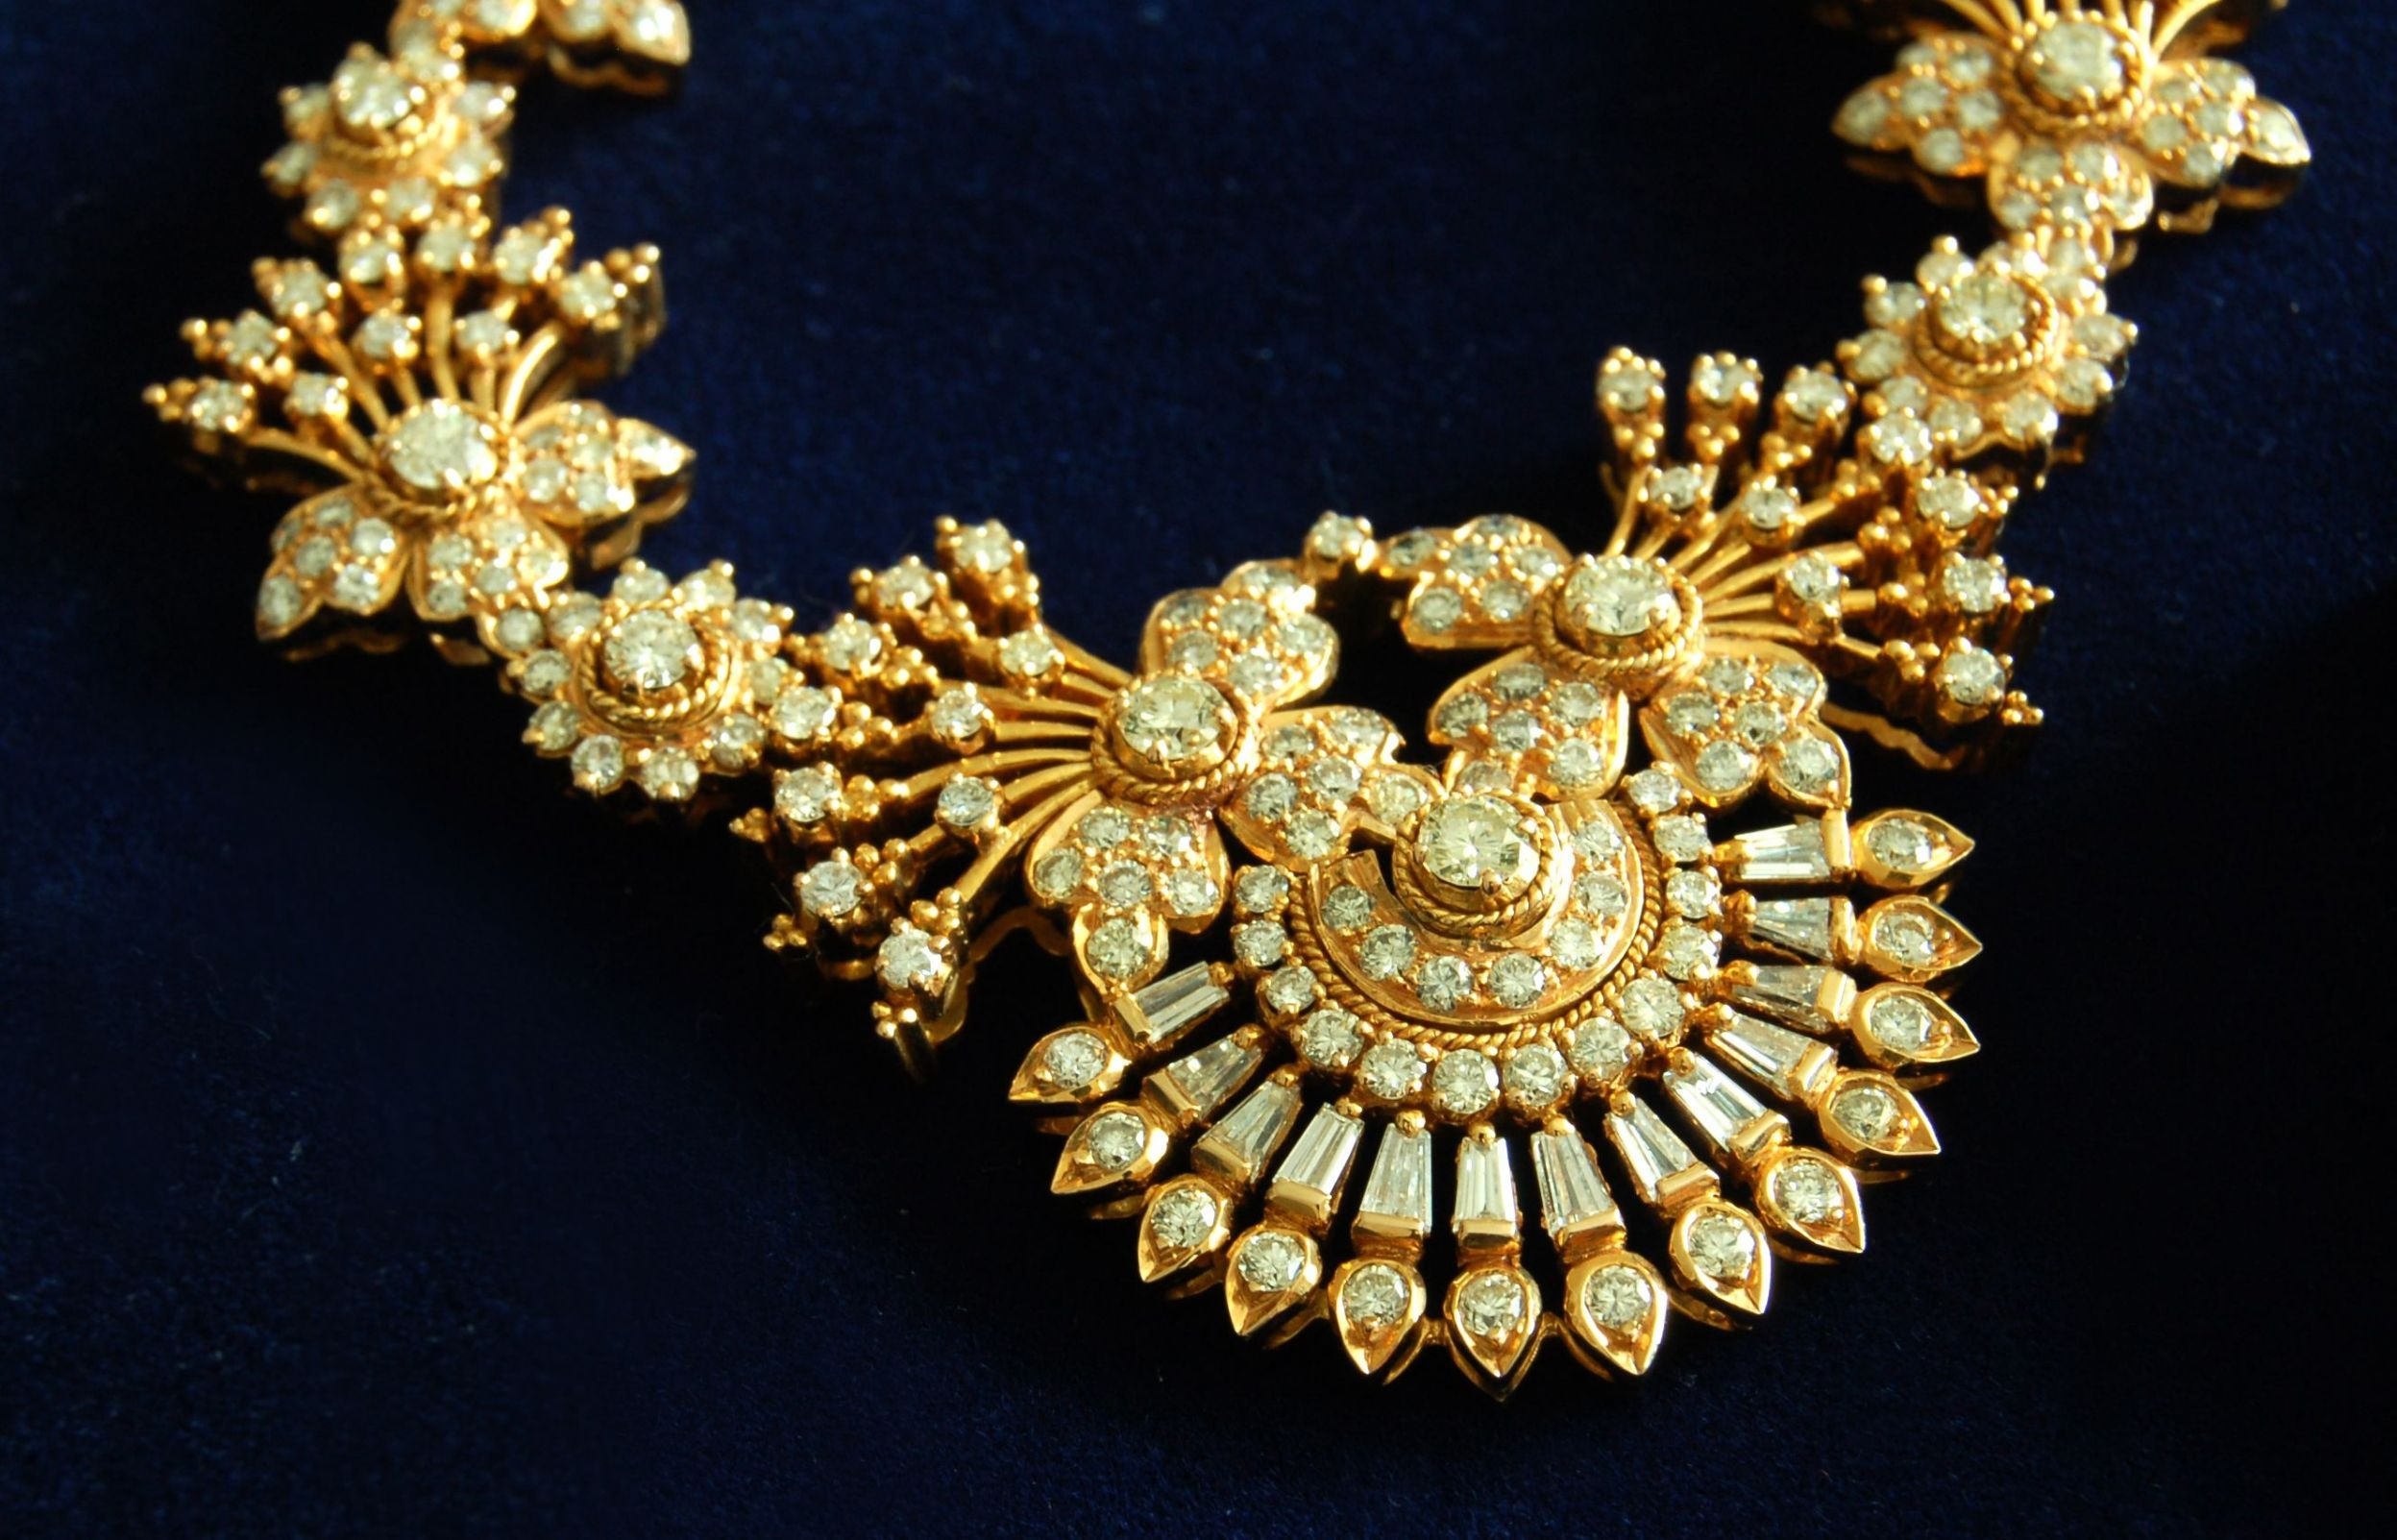 Trends For Most Expensive Gold Necklace ACCESSORIES THAT ARE